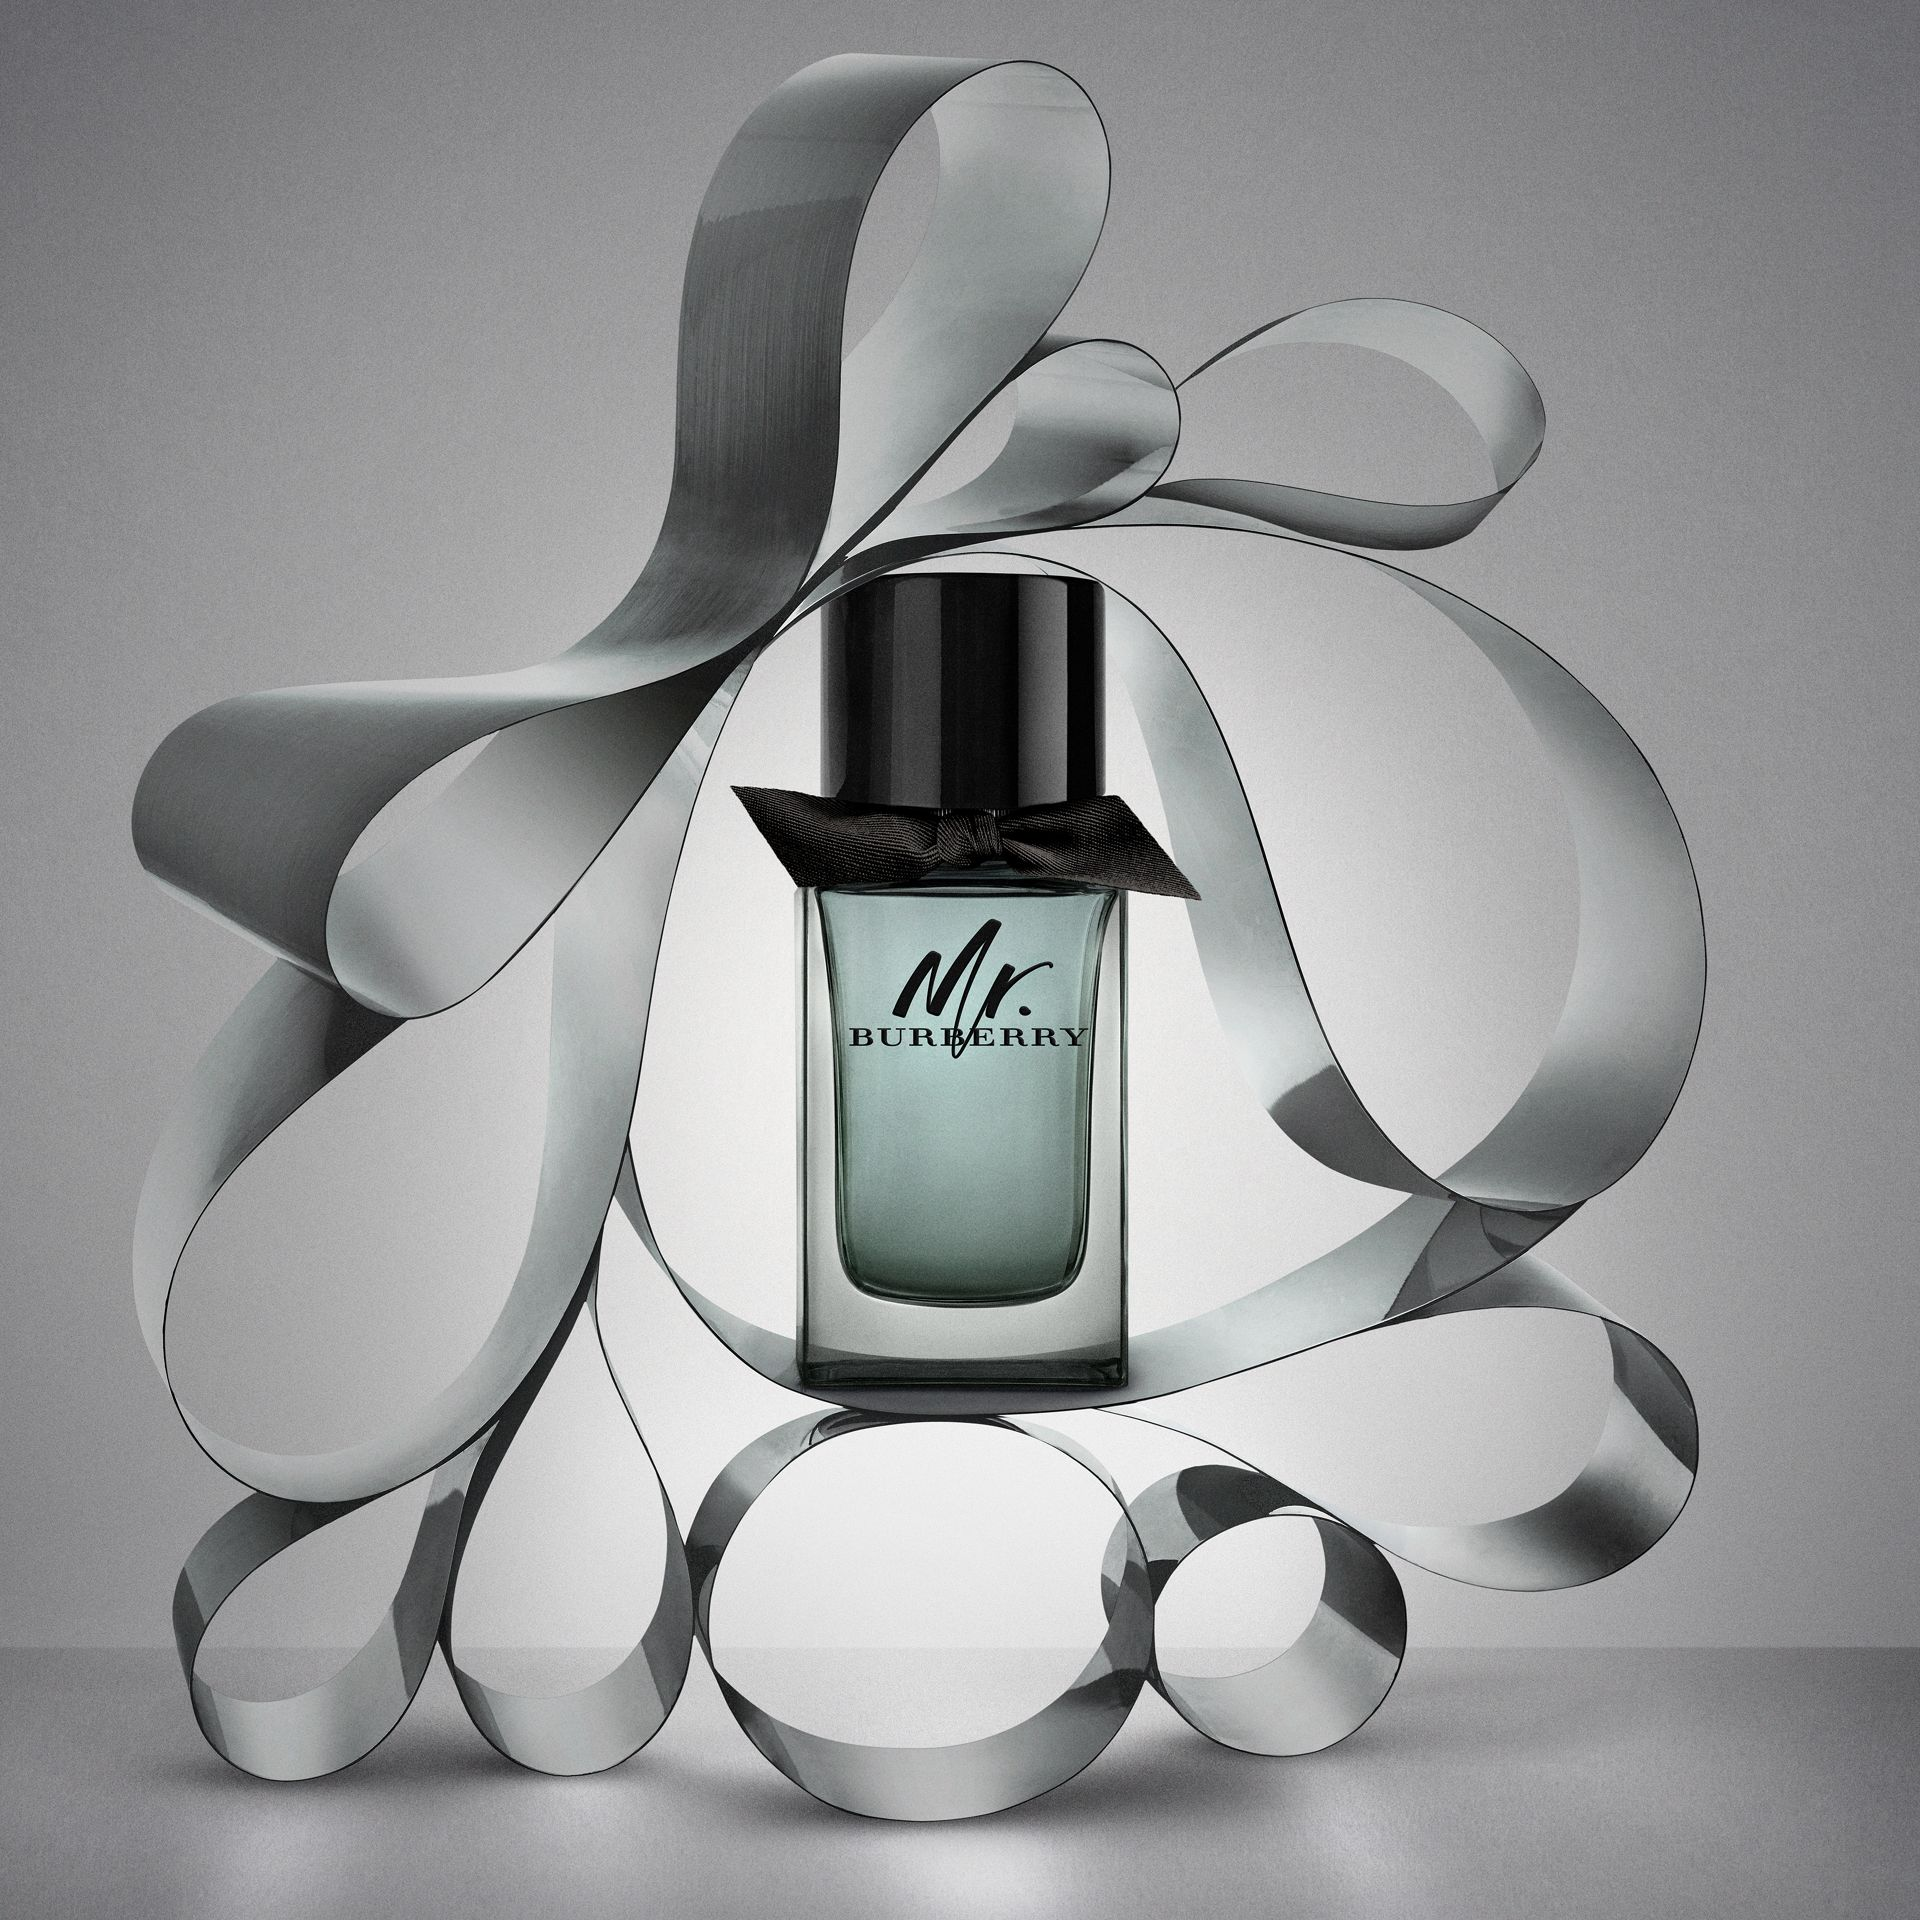 Mr. Burberry Eau de Parfum Gift Set in No Colour - Men | Burberry - gallery image 1